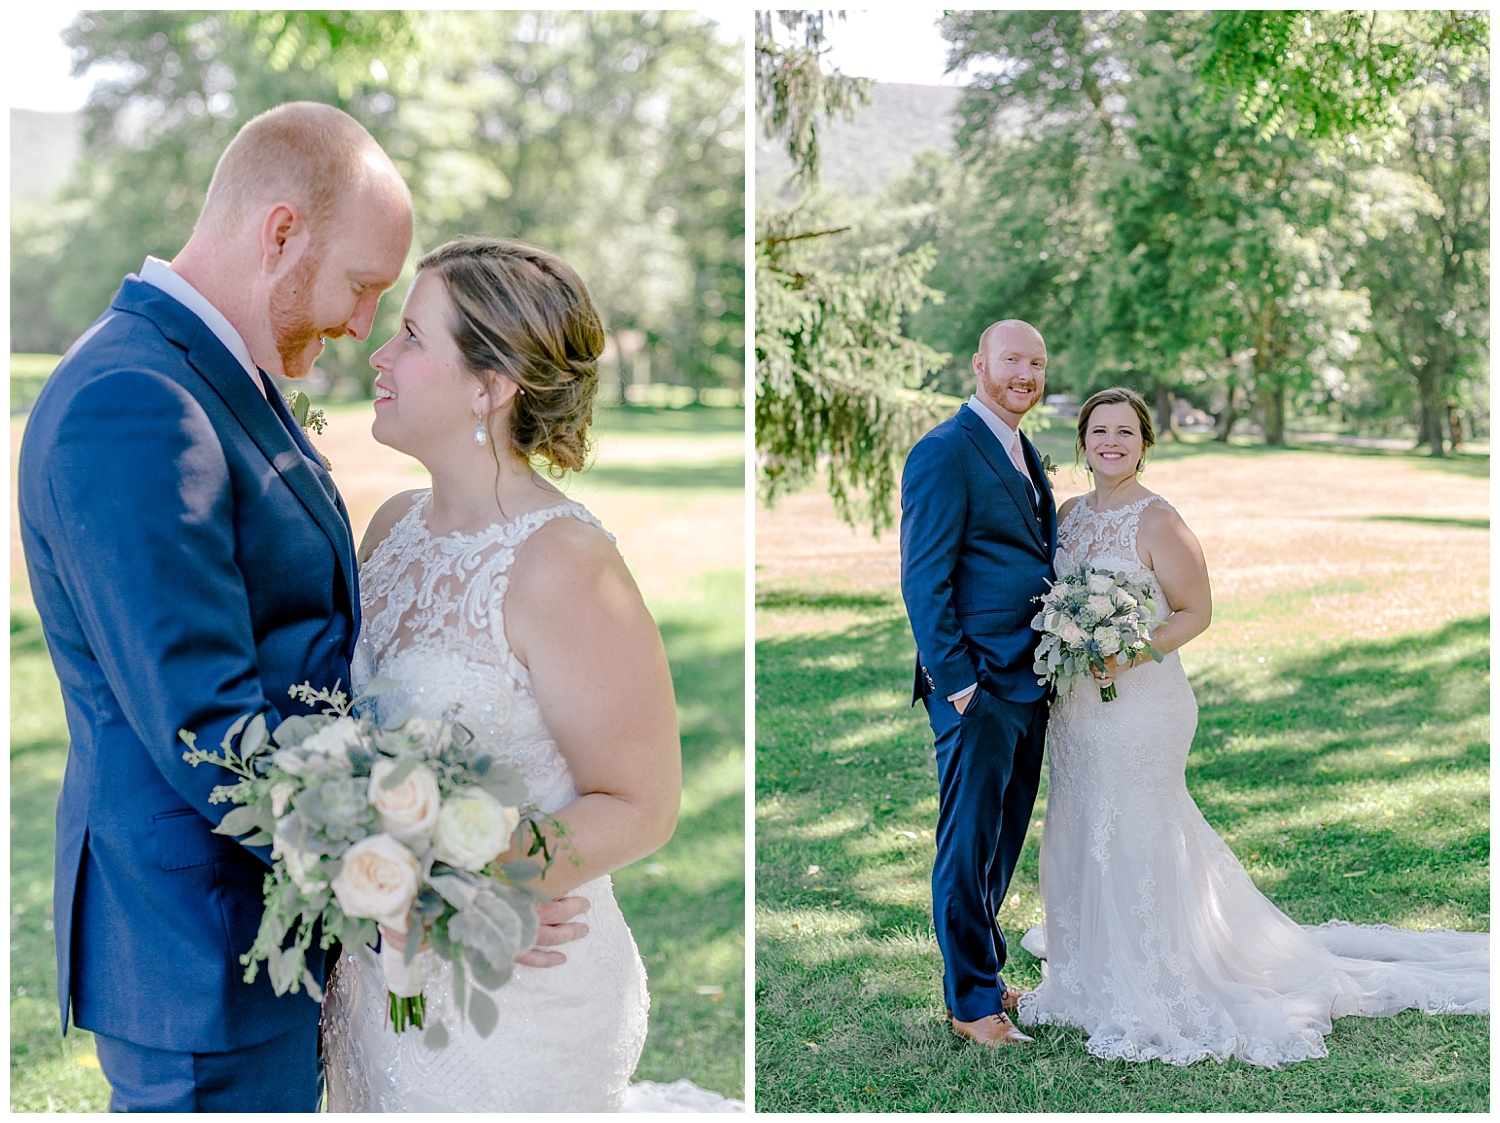 Navy and Blush pink inspired summertime whitewoods wedding in Northeastern Pennsylvania NEPA wapwallopen wedding venue by  PA based wedding and lifestyle photographer Lytle photography_0031.jpg